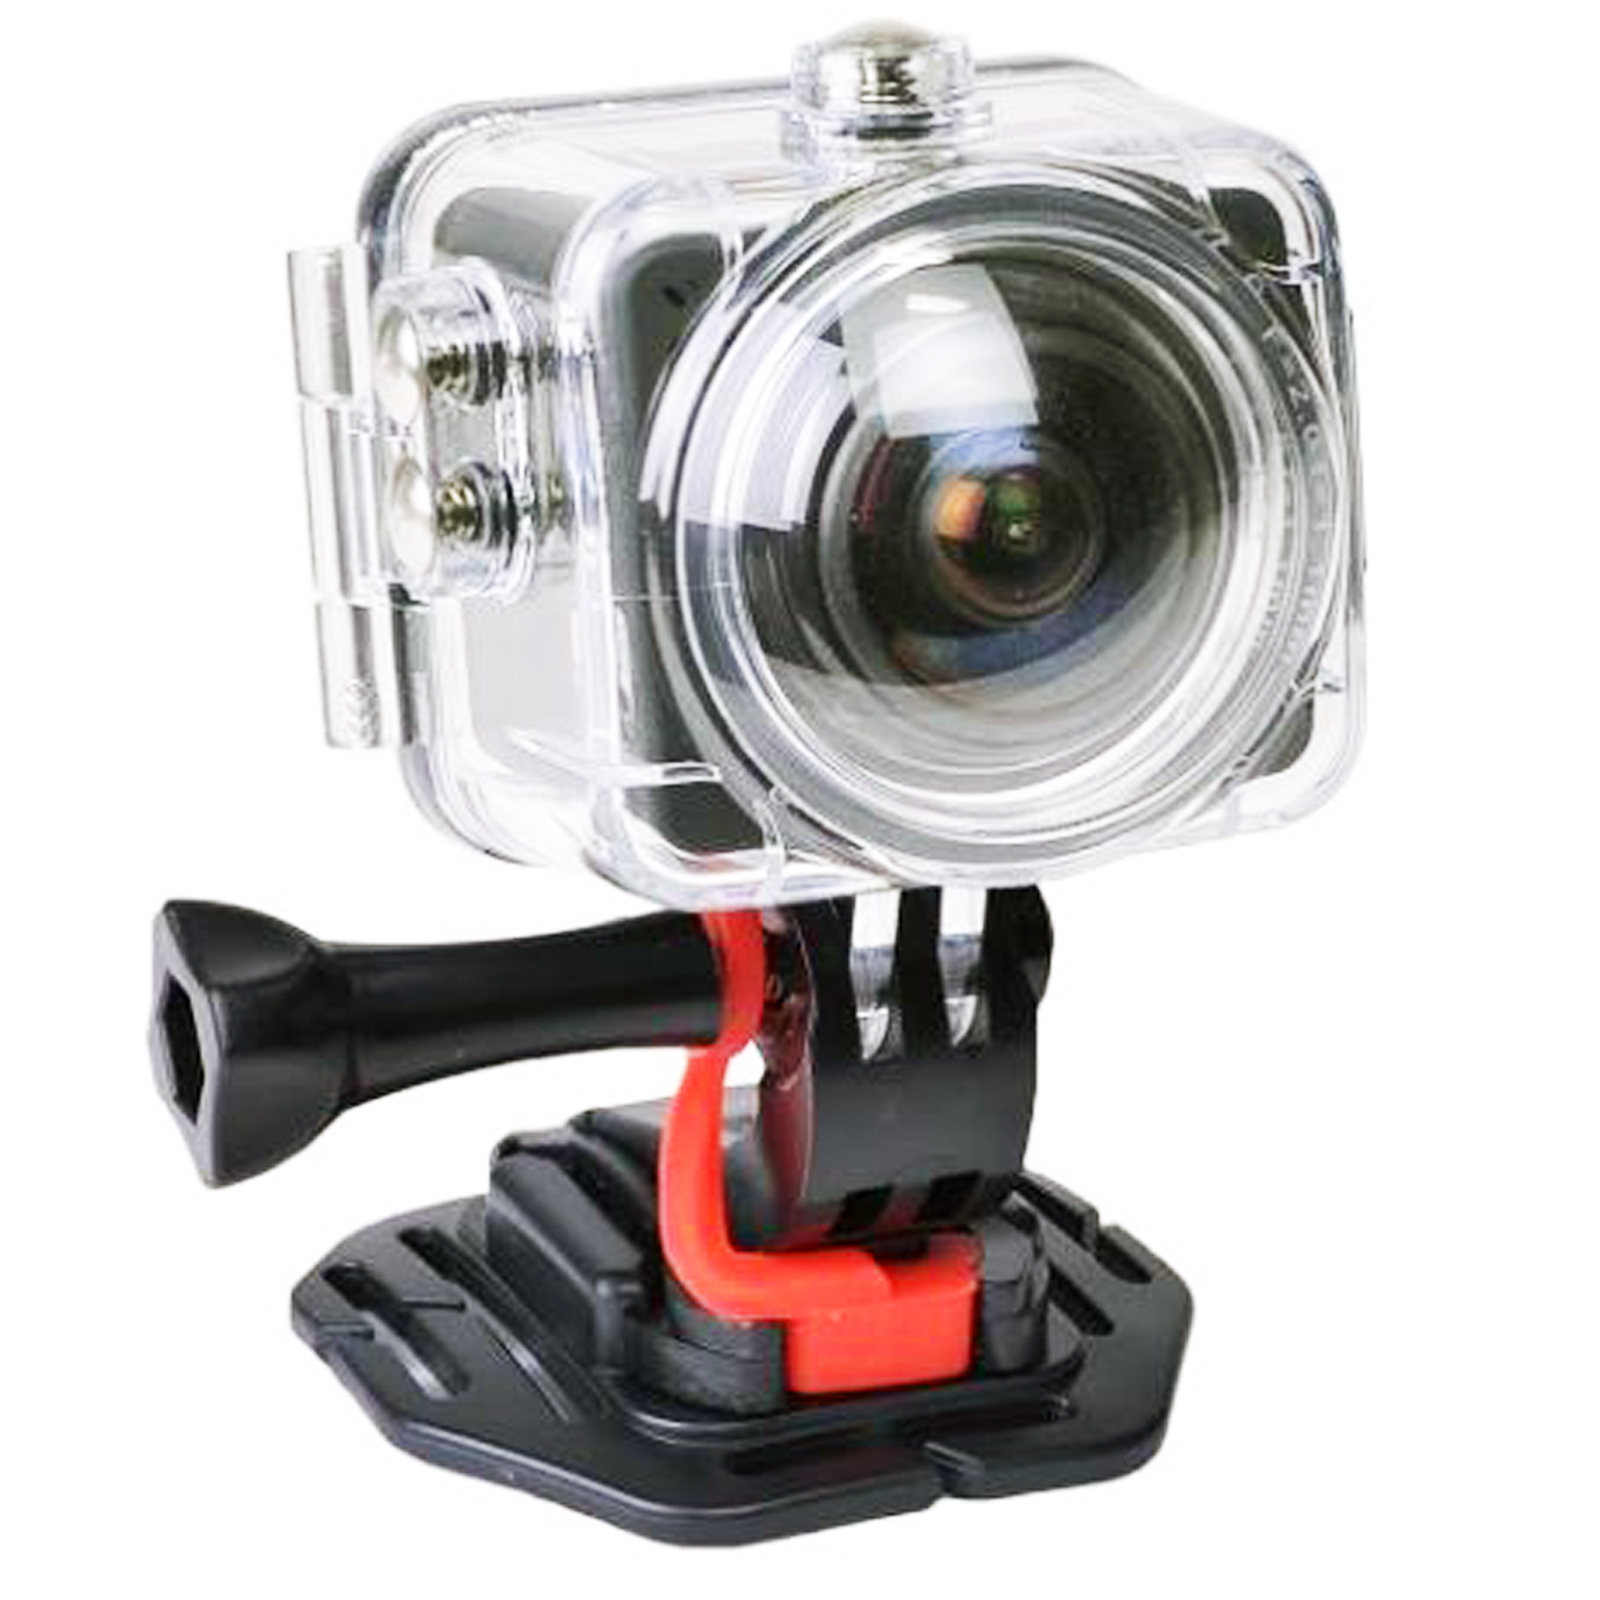 ASR Outdoor 360 Degree Panoramic Full HD 1080p Action Camera